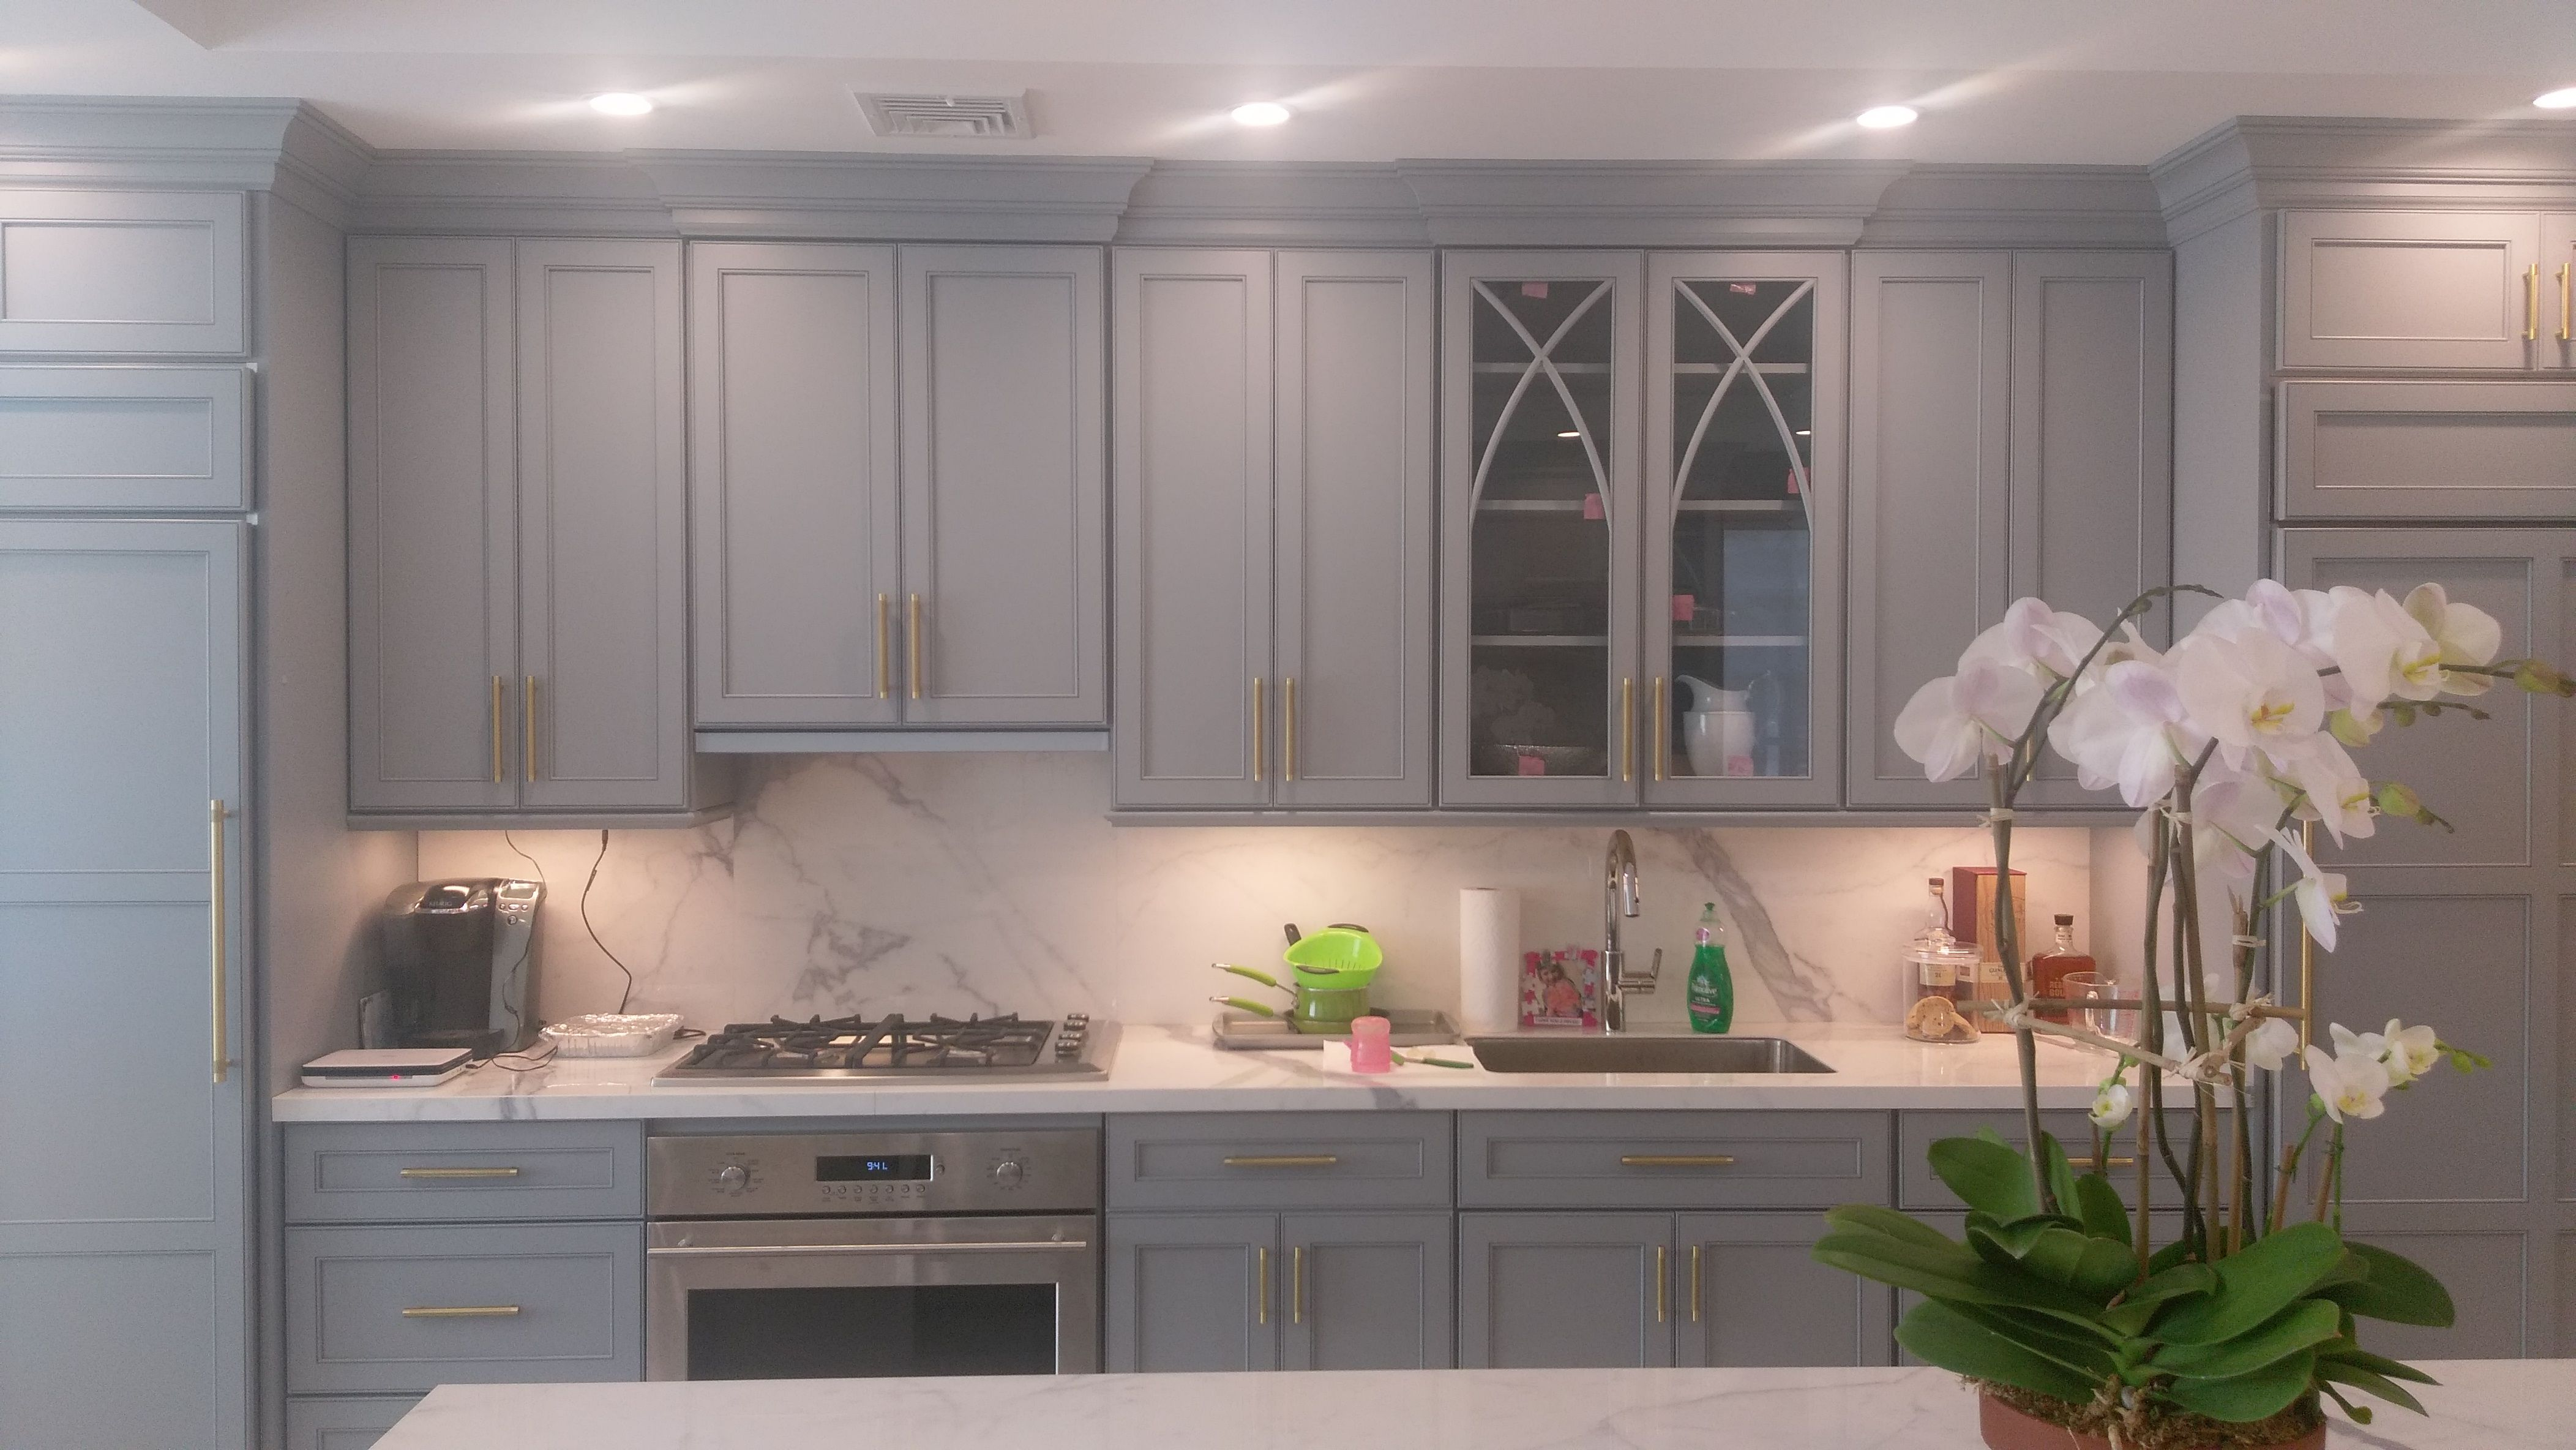 Cabinet Gallery Brighton Cabinetry Kitchen Remodel Cabinet Kitchen Cabinet Colors